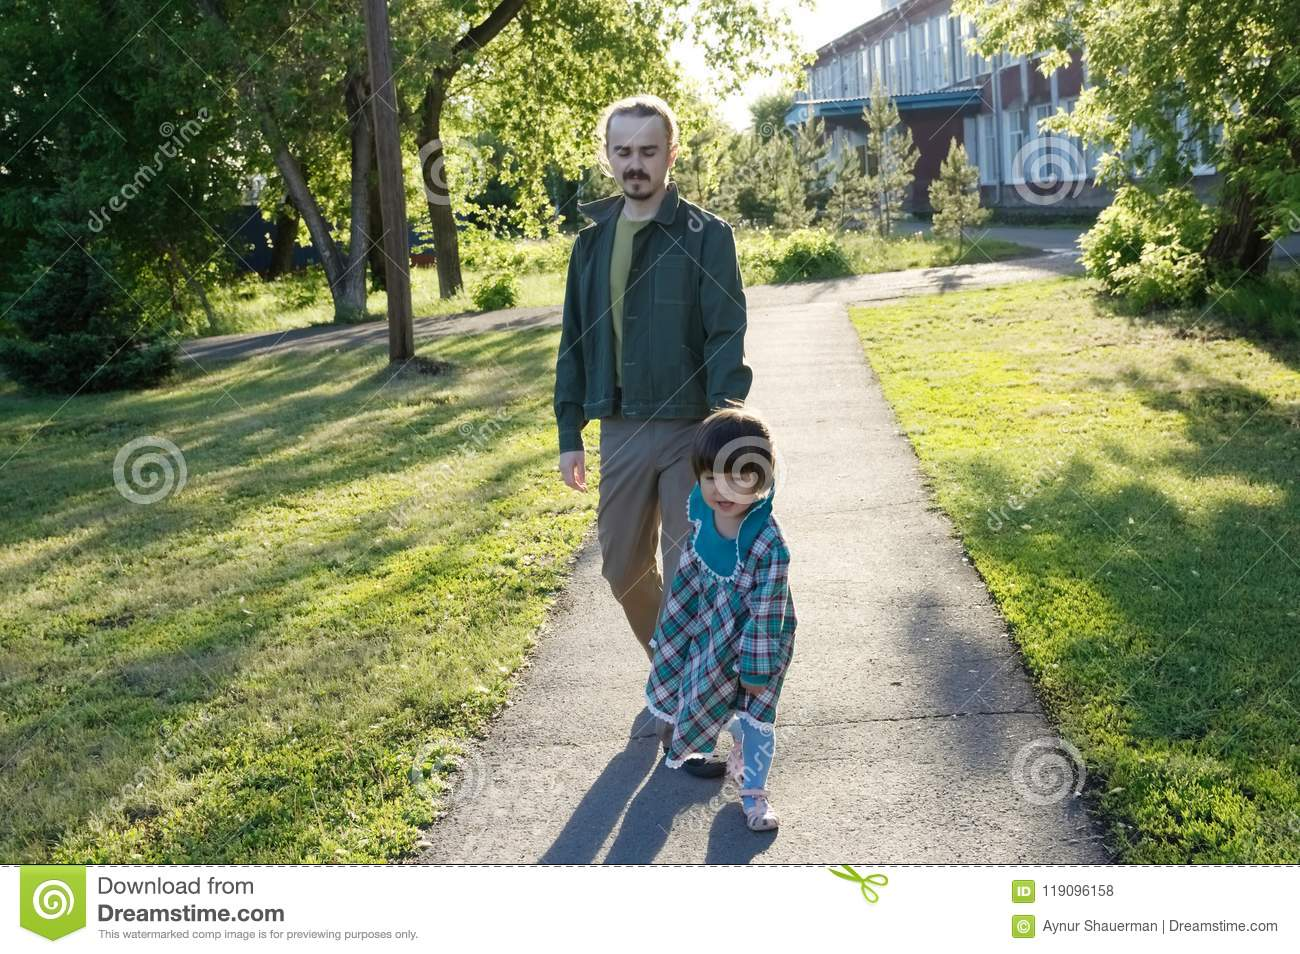 Apologise, but Dad with daughter walking necessary